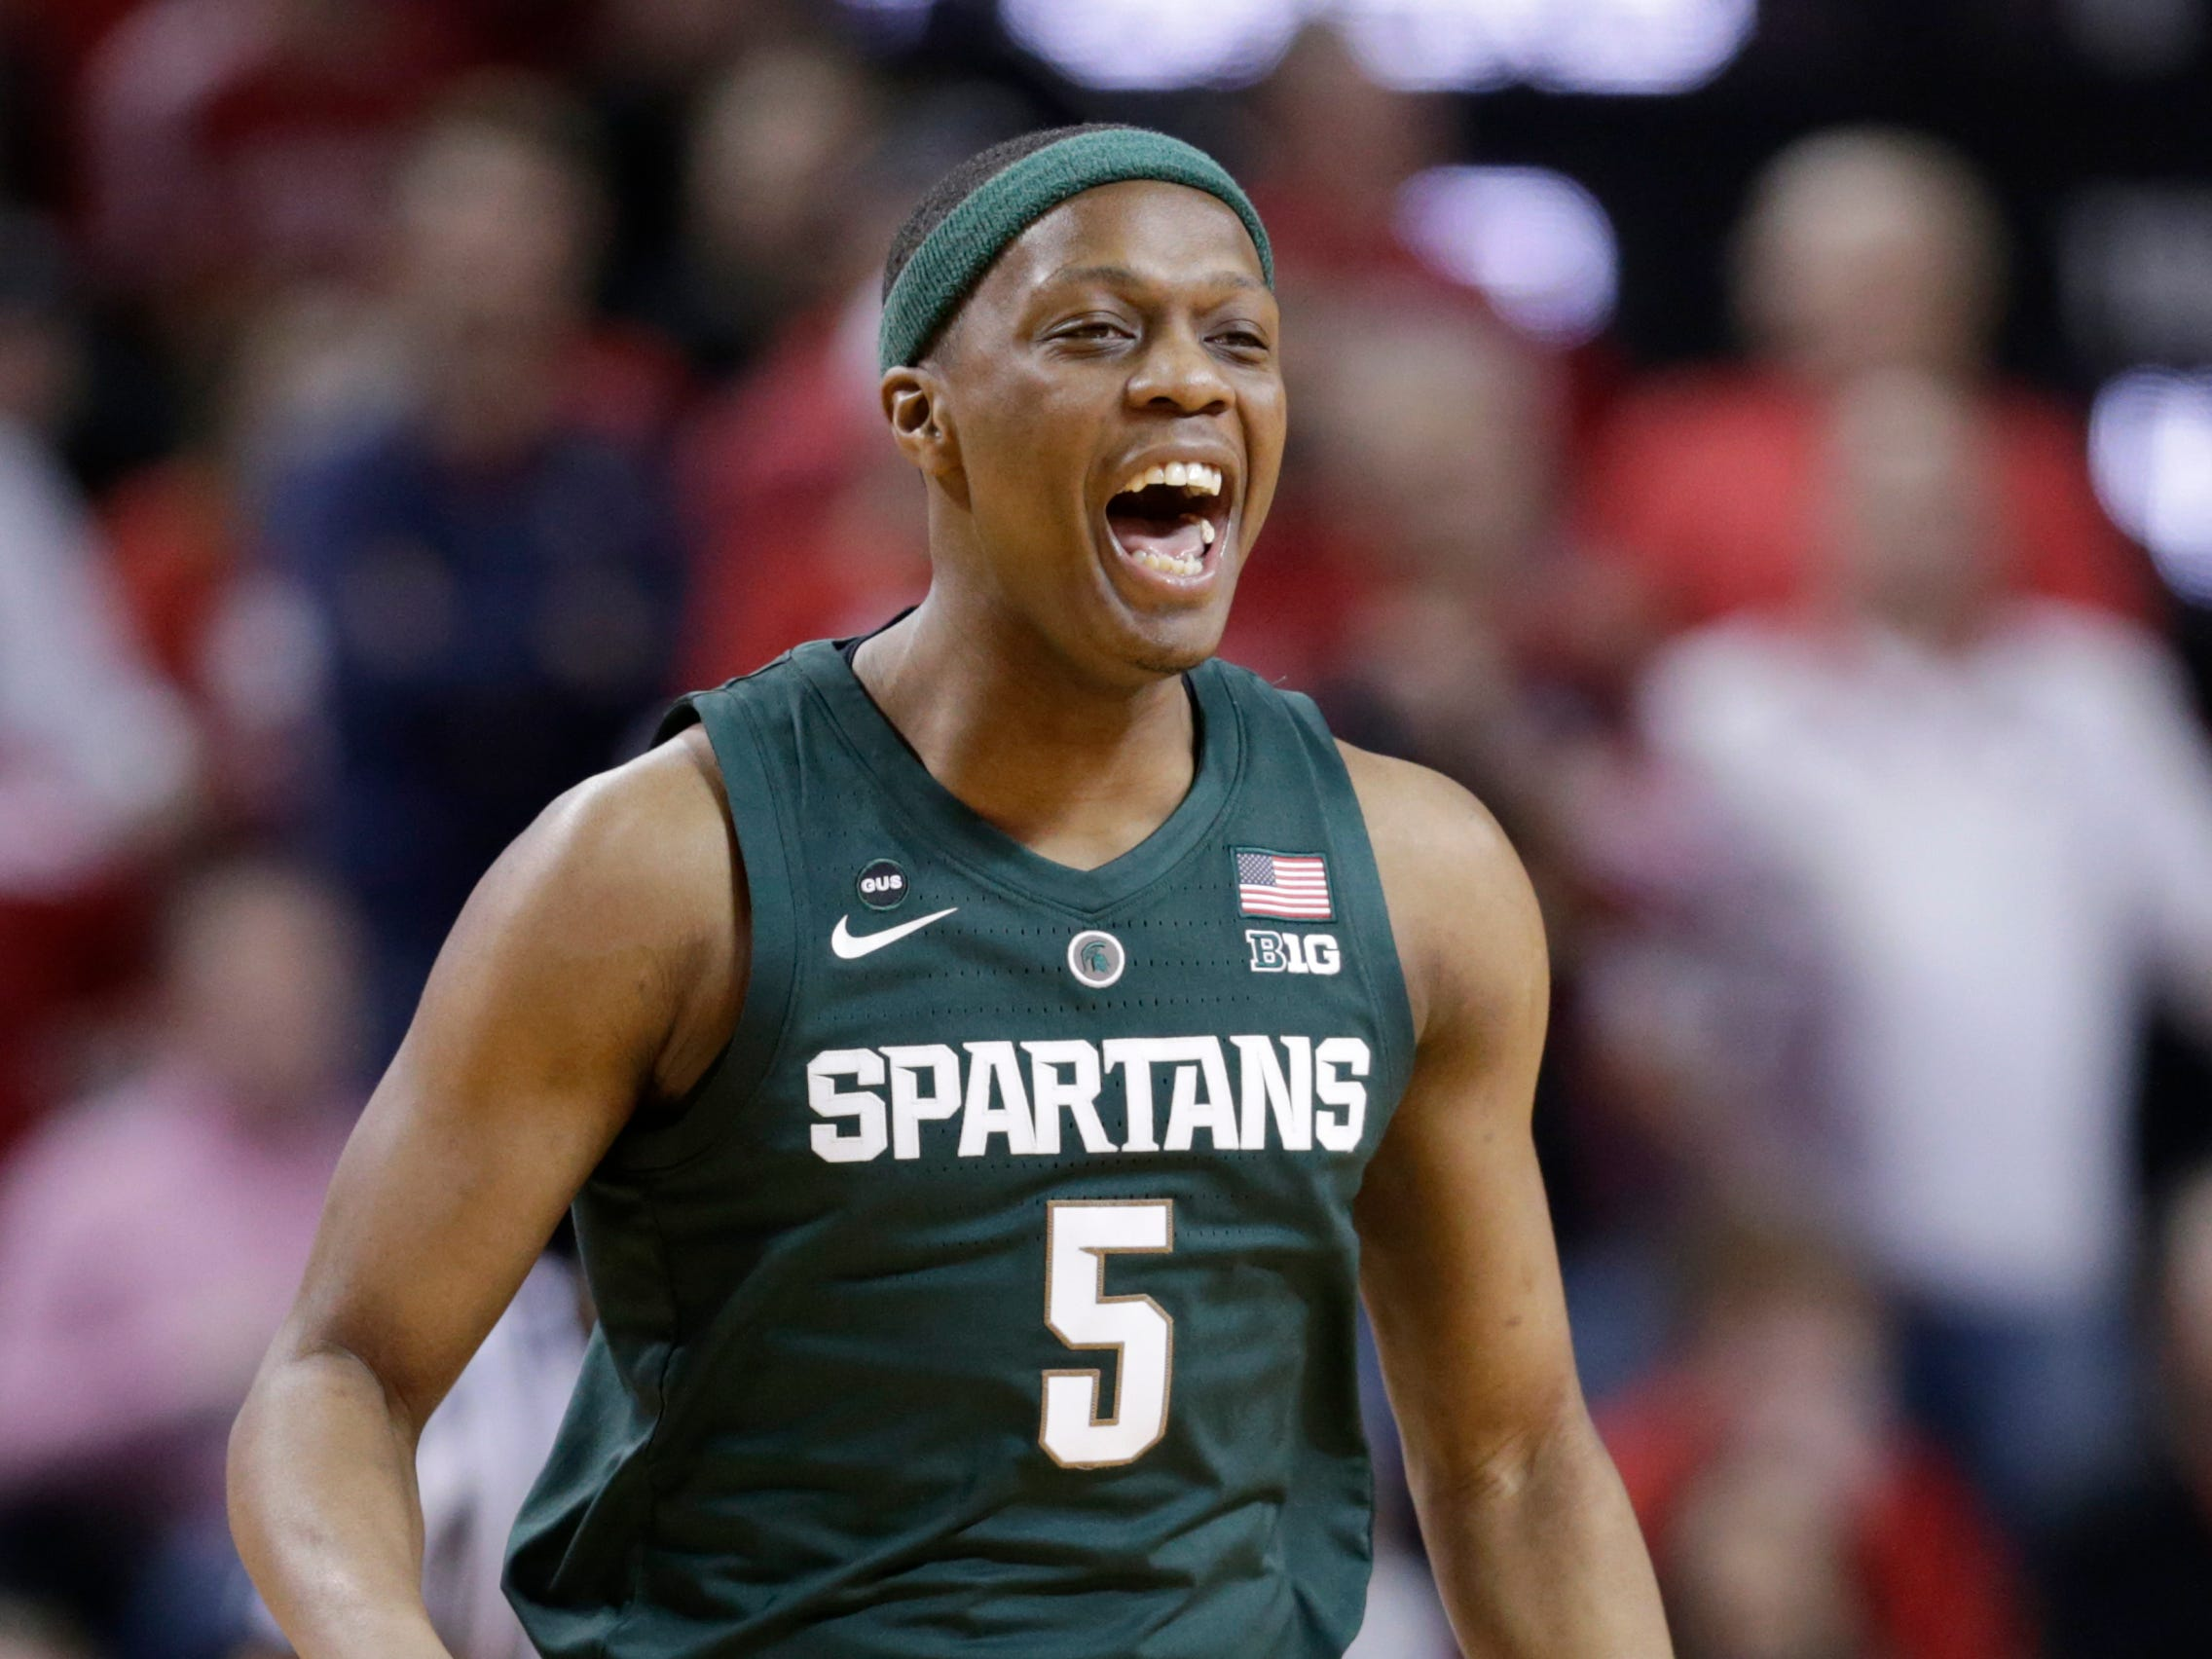 Michigan State's Cassius Winston (5) reacts after scoring a 3-point shot during the first half of an NCAA college basketball game against Nebraska in Lincoln, Neb., Thursday, Jan. 17, 2019.